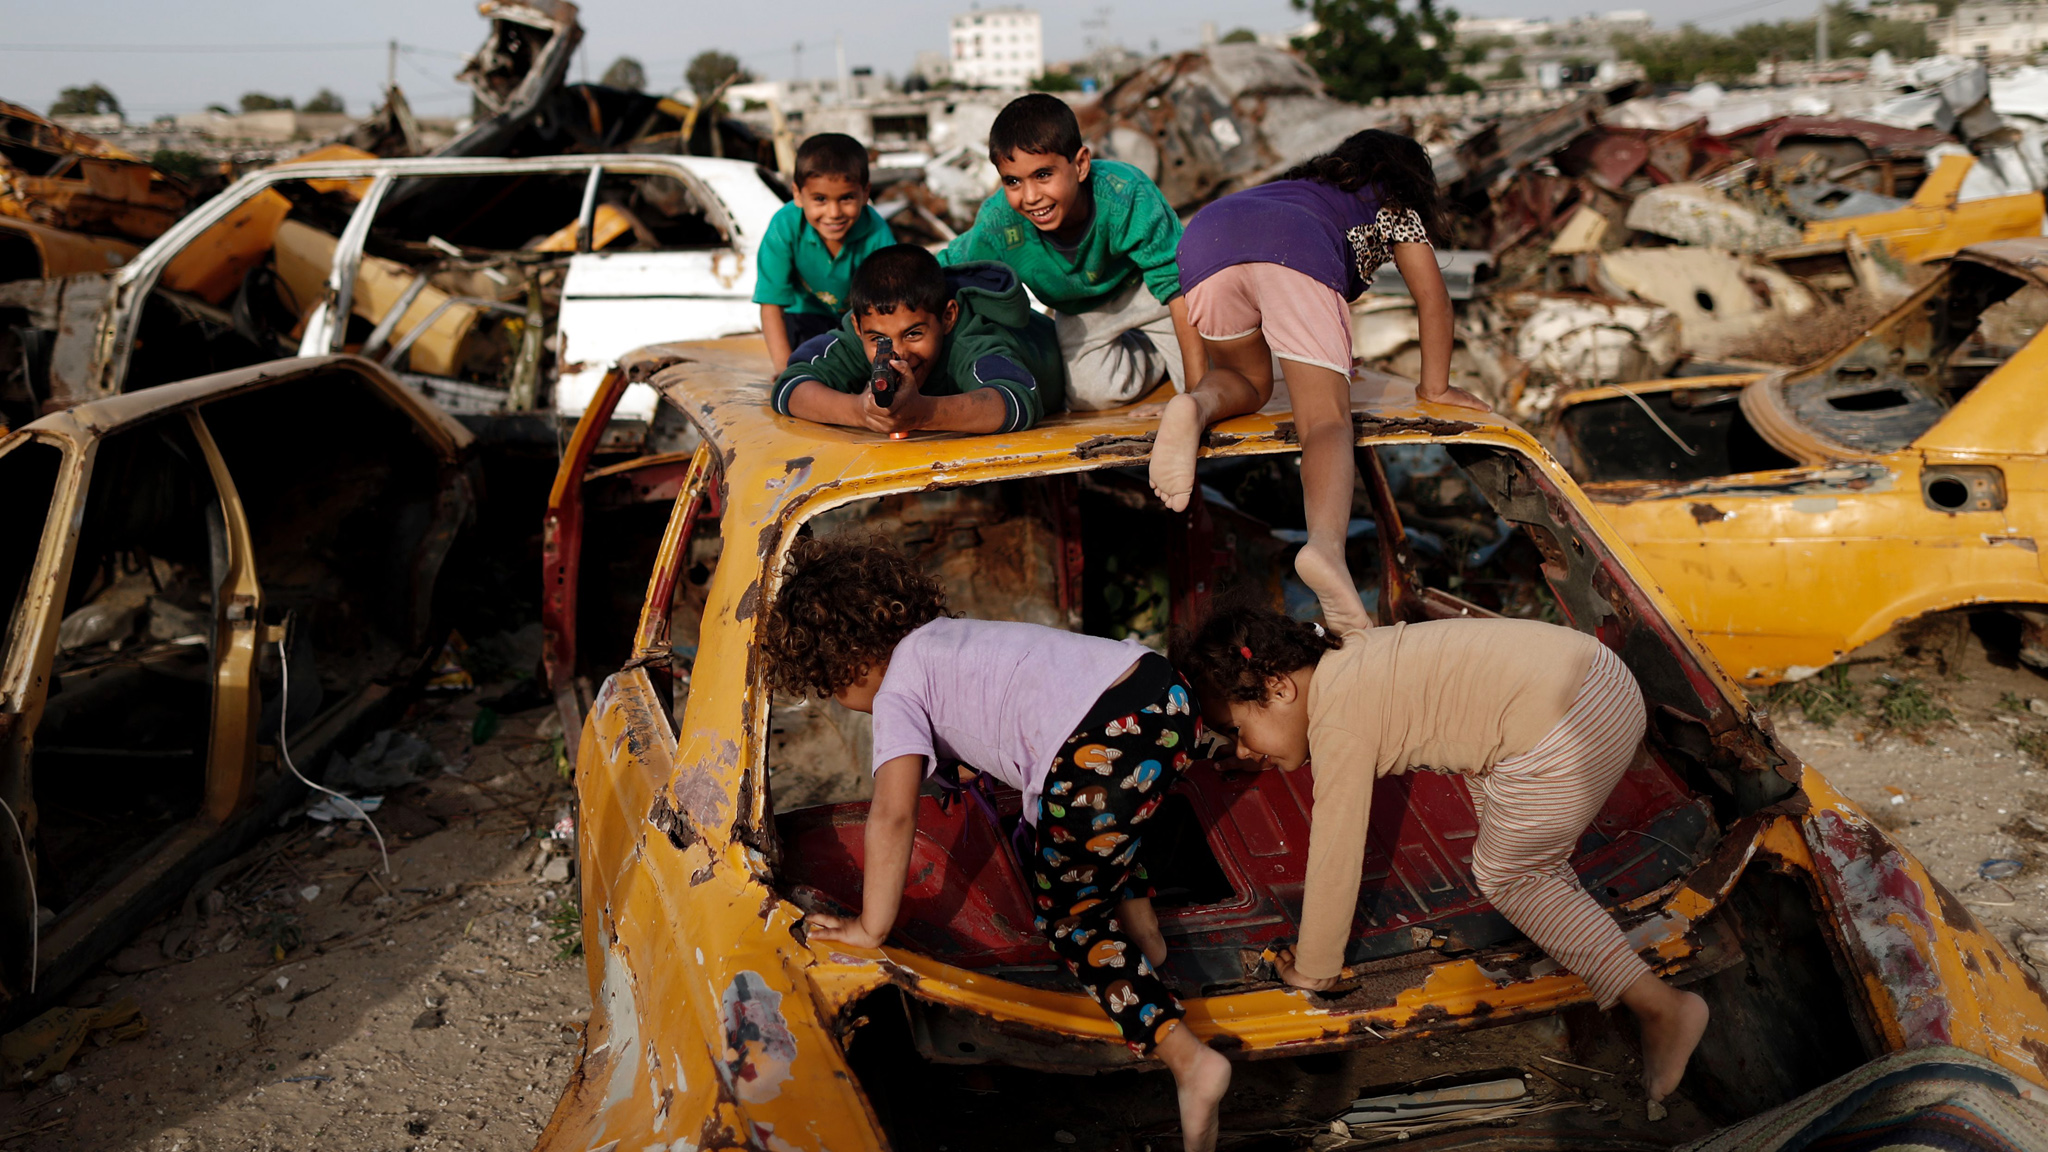 TOPSHOT - Palestinian children play amid...TOPSHOT - Palestinian children play amidst wrecked cars in an impoverished area in the southern Gaza Strip city of Khan Yunis, on May 9, 2016.  / AFP PHOTO / THOMAS COEXTHOMAS COEX/AFP/Getty Images